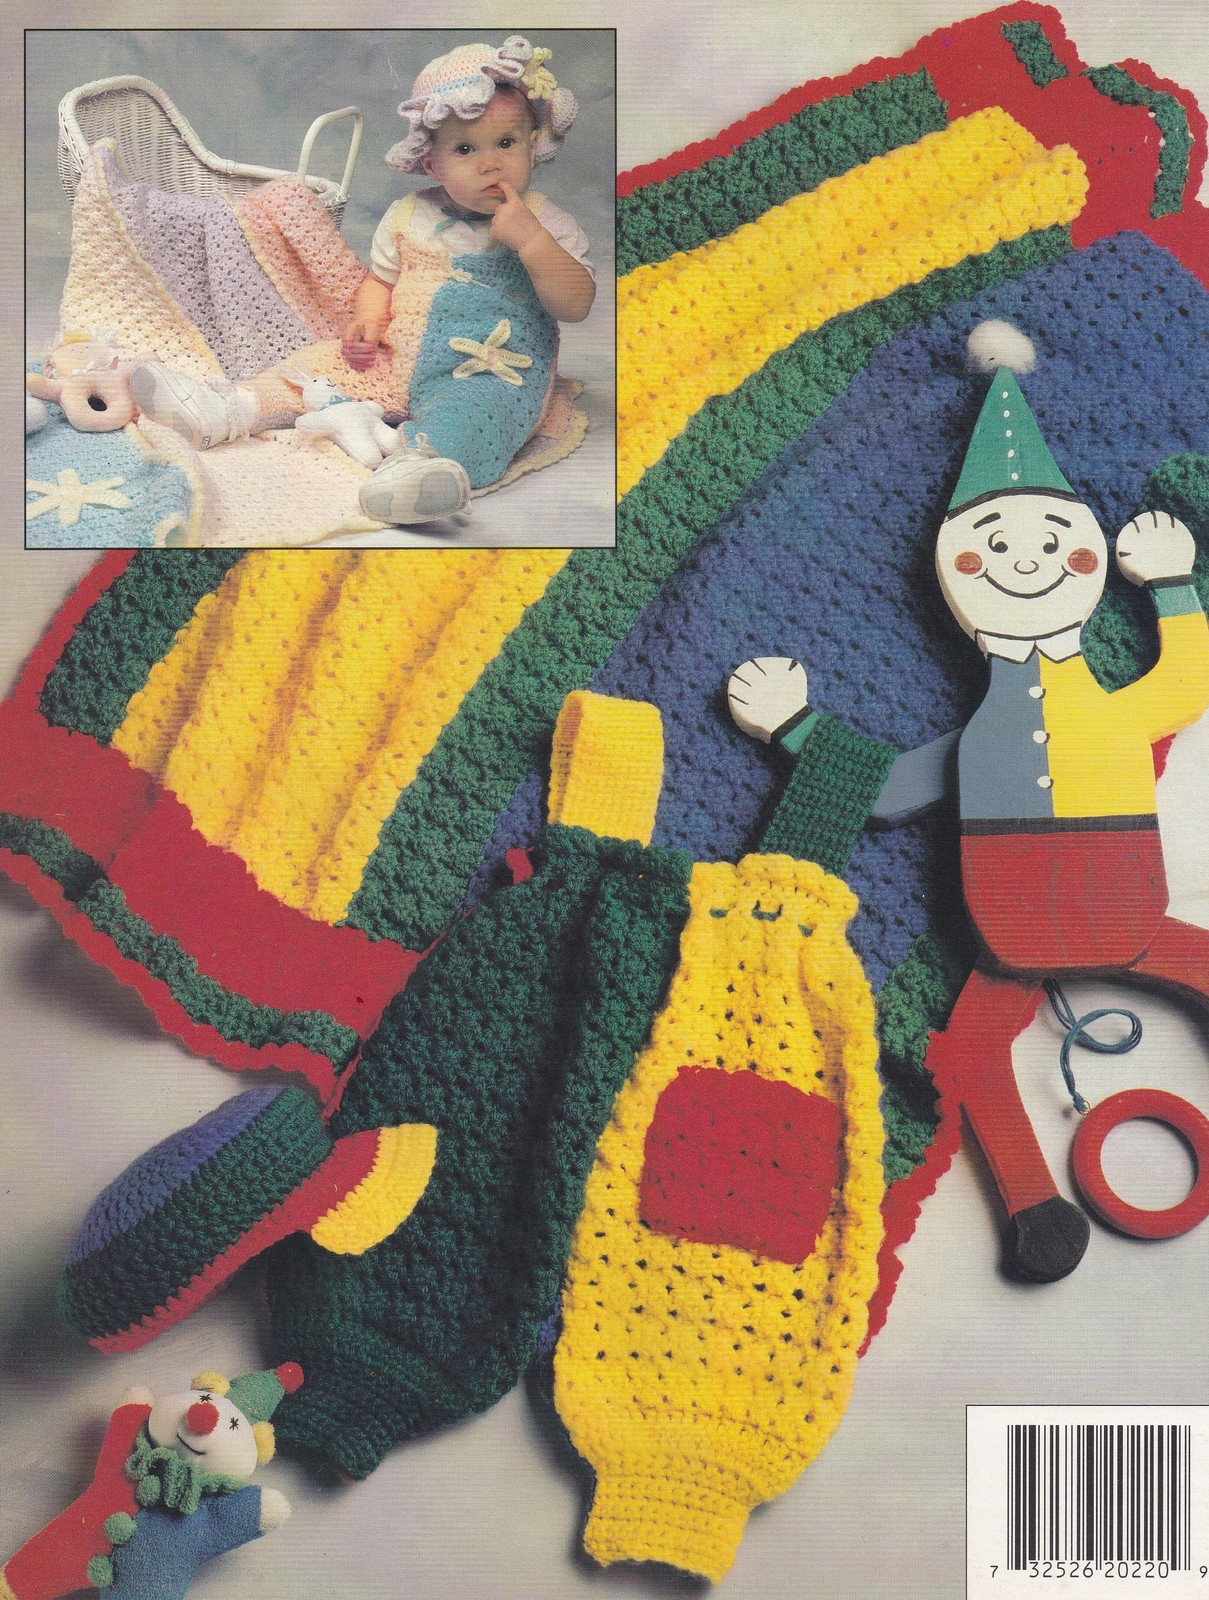 Jolly Jumpers, Annie's Crochet Pattern Booklet 87J22 Infants to 1 Year Sizes